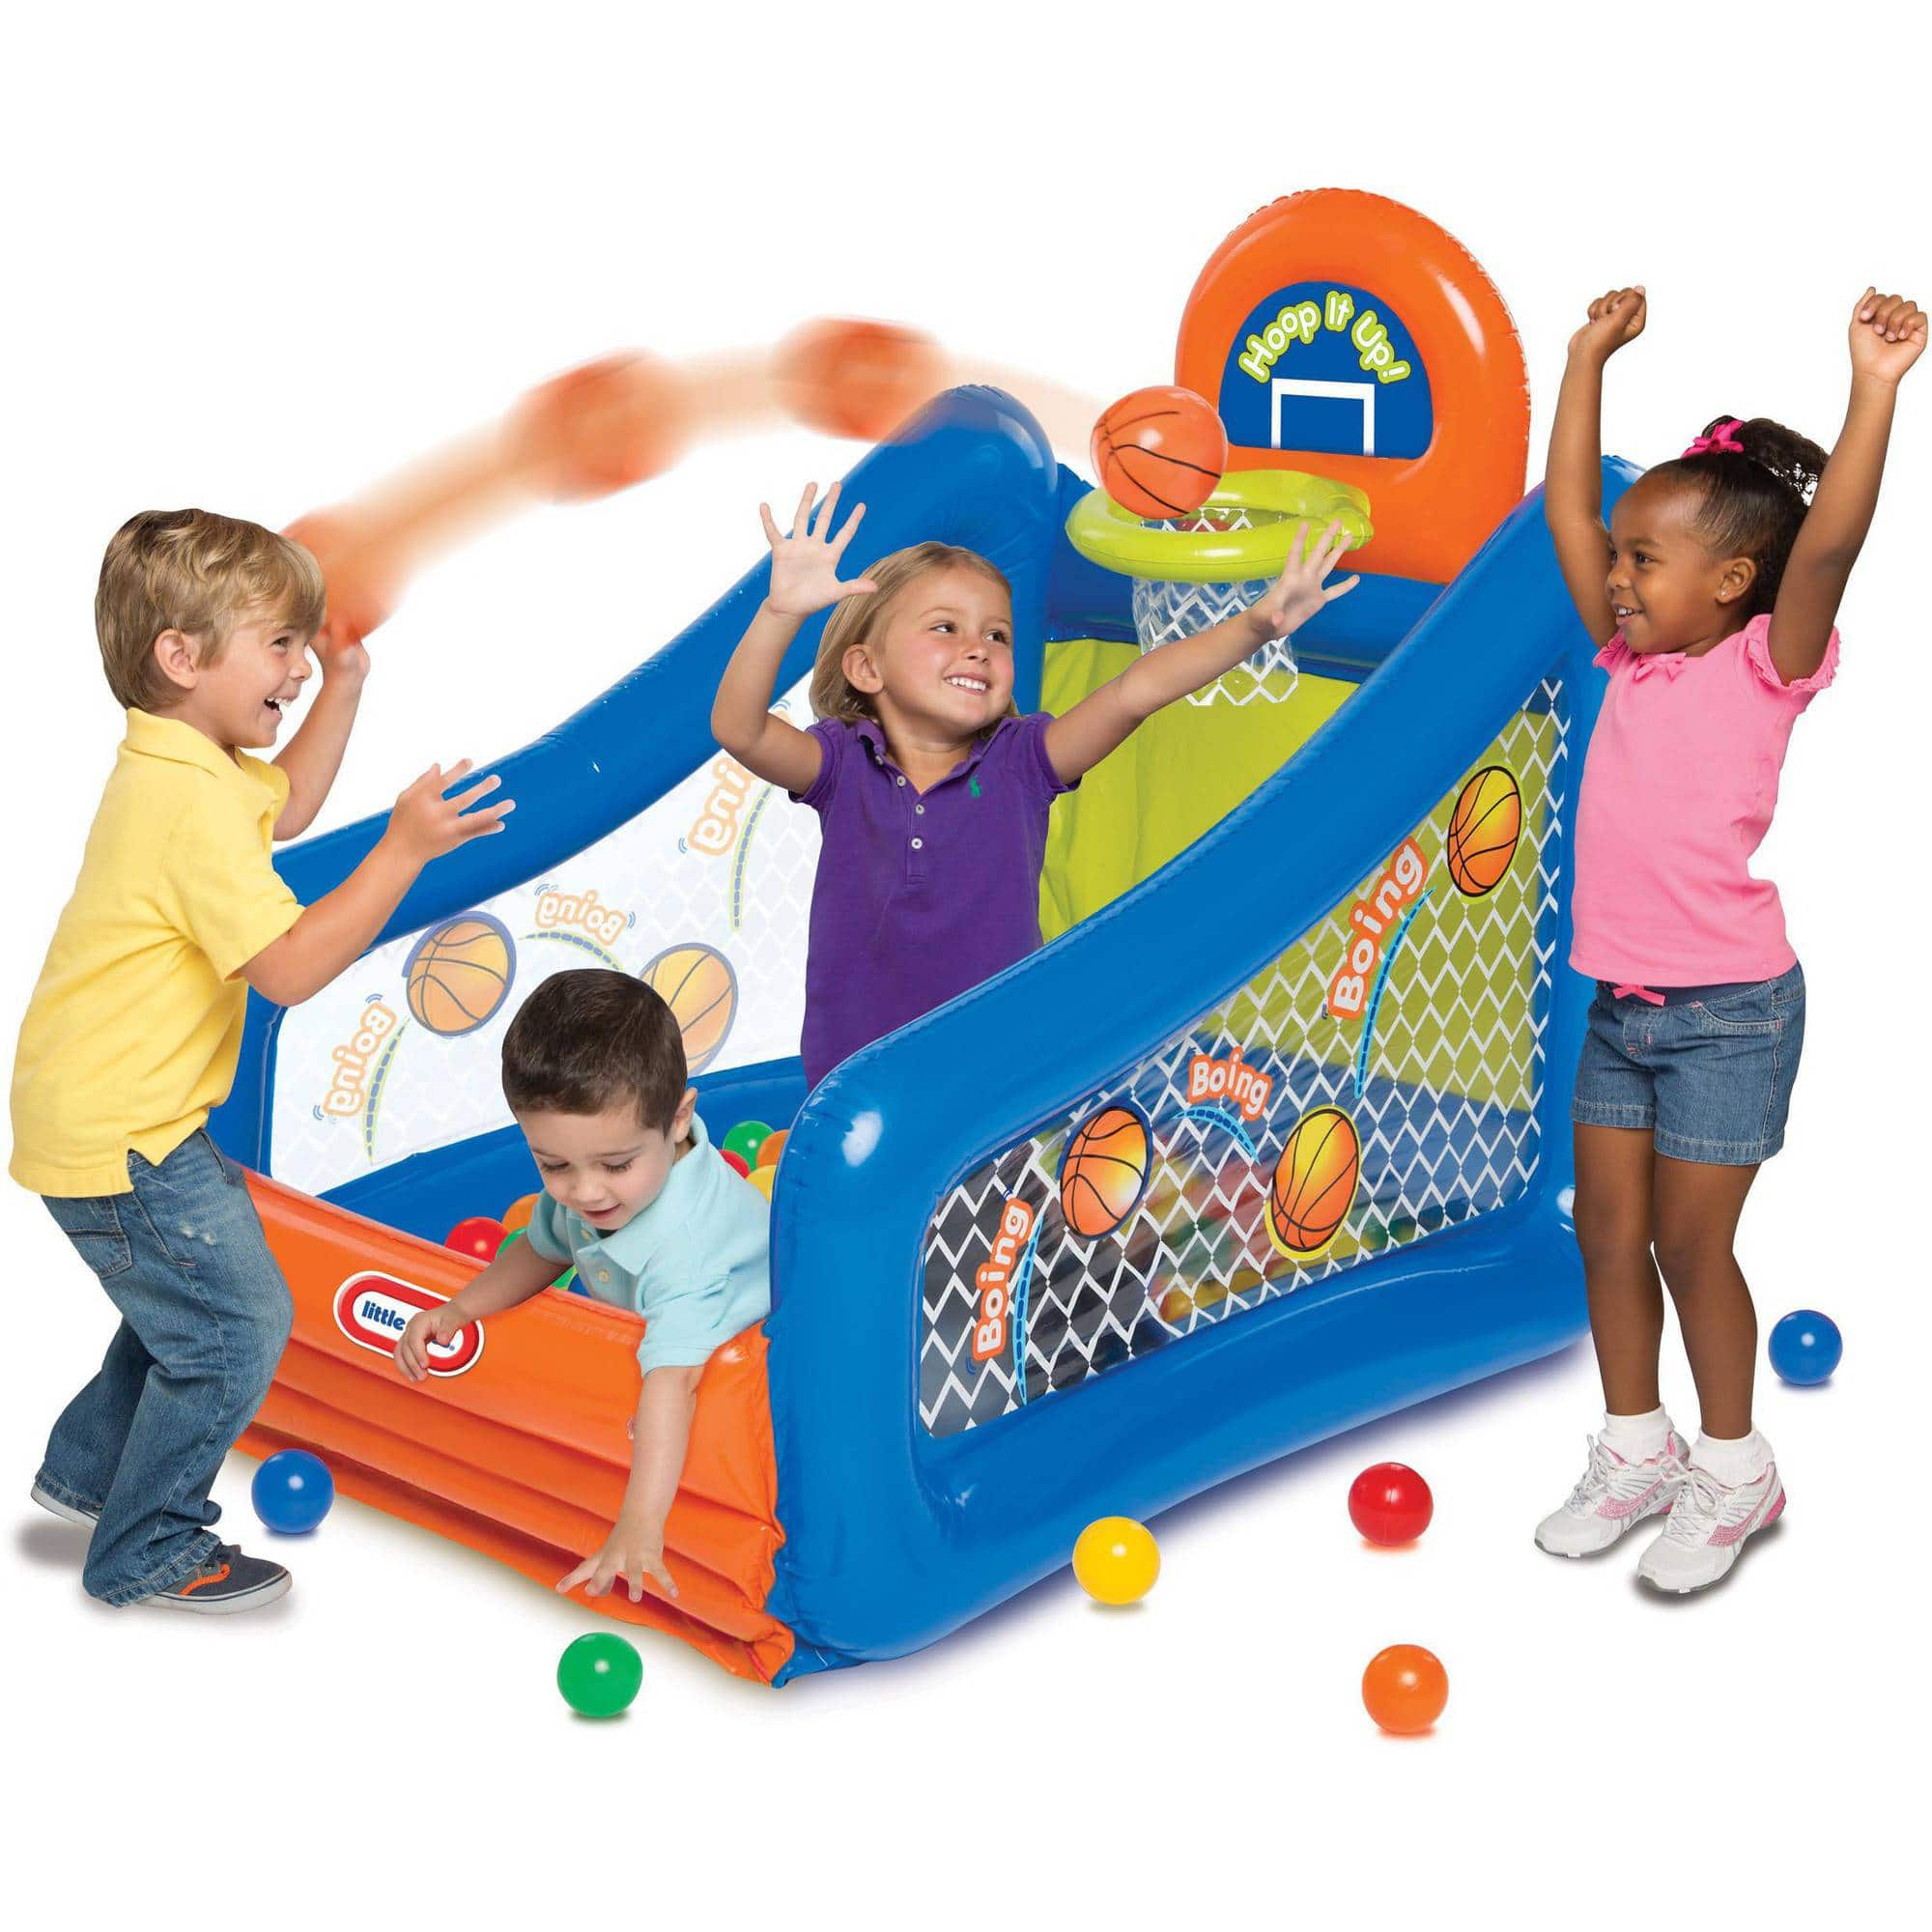 Little Tikes Hoop It Up! Play Center Ball Pit for $29.97